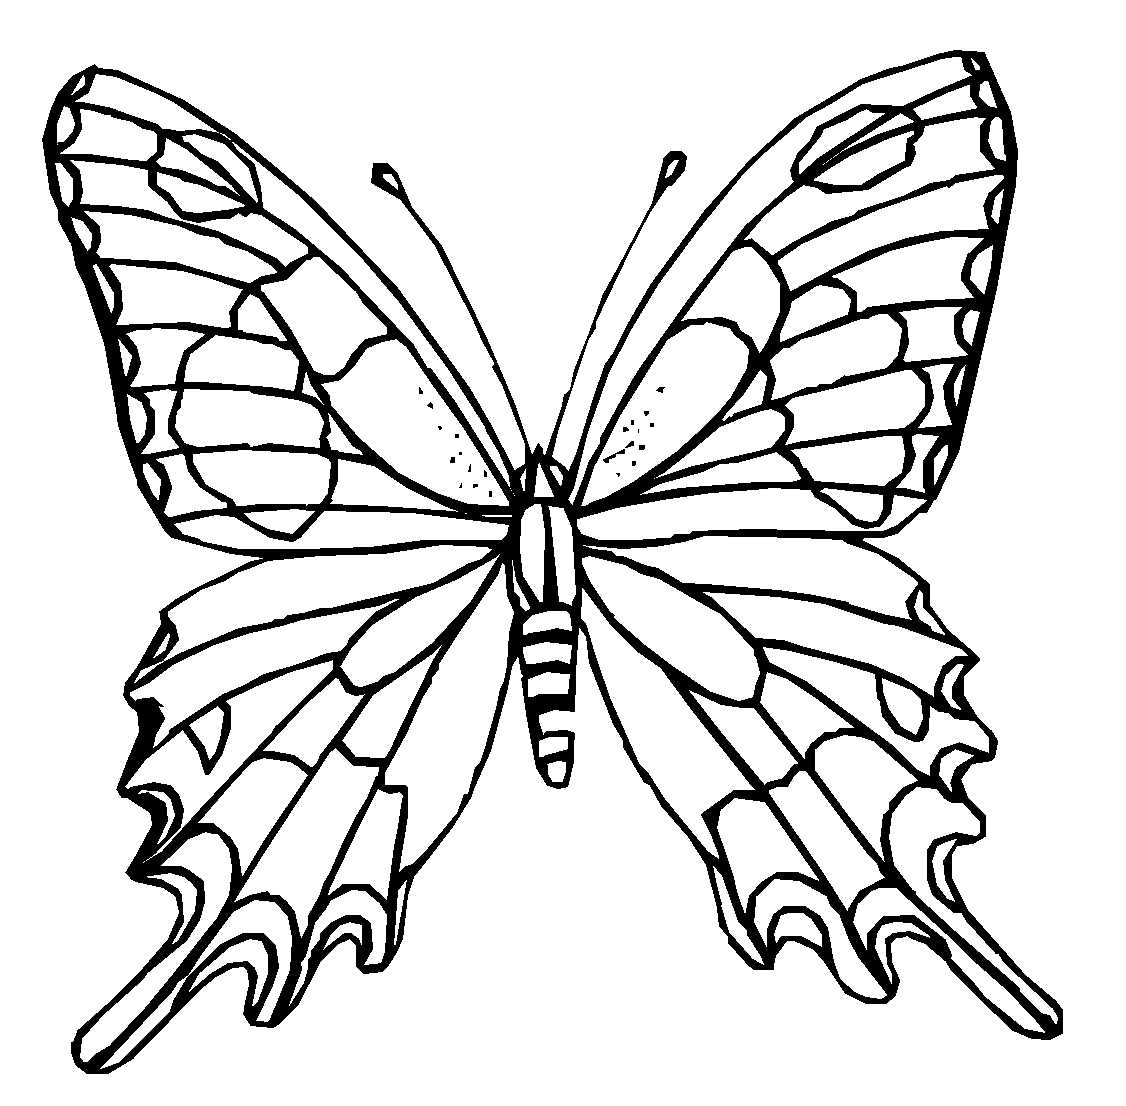 colours drawing wallpaper: Butterfly Cartoone Colour Drawing HD ...